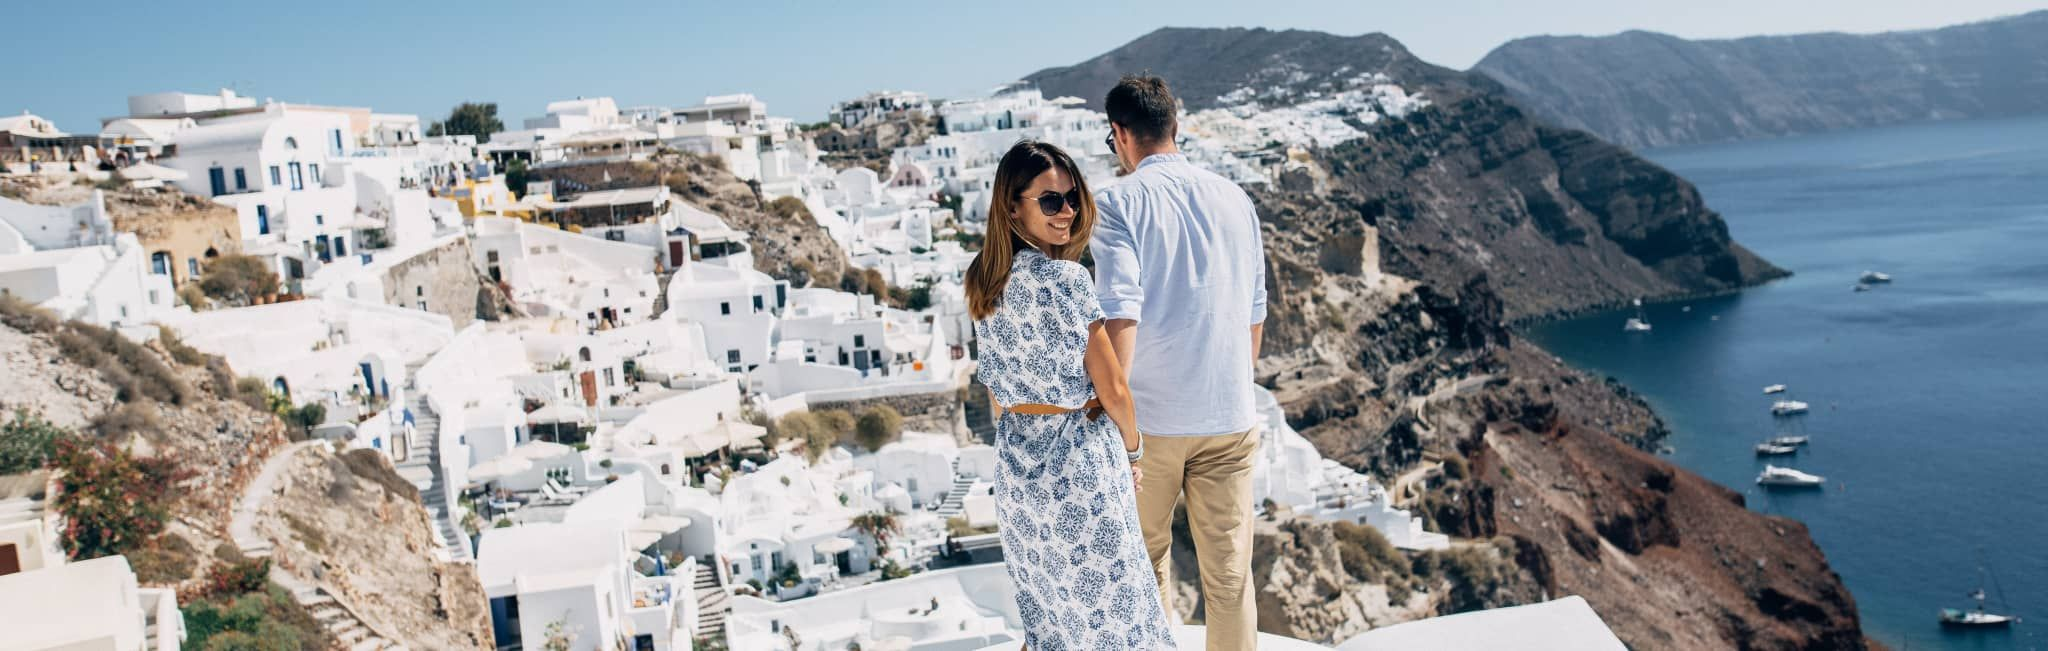 Couple admiring the view in Santorini, Greece